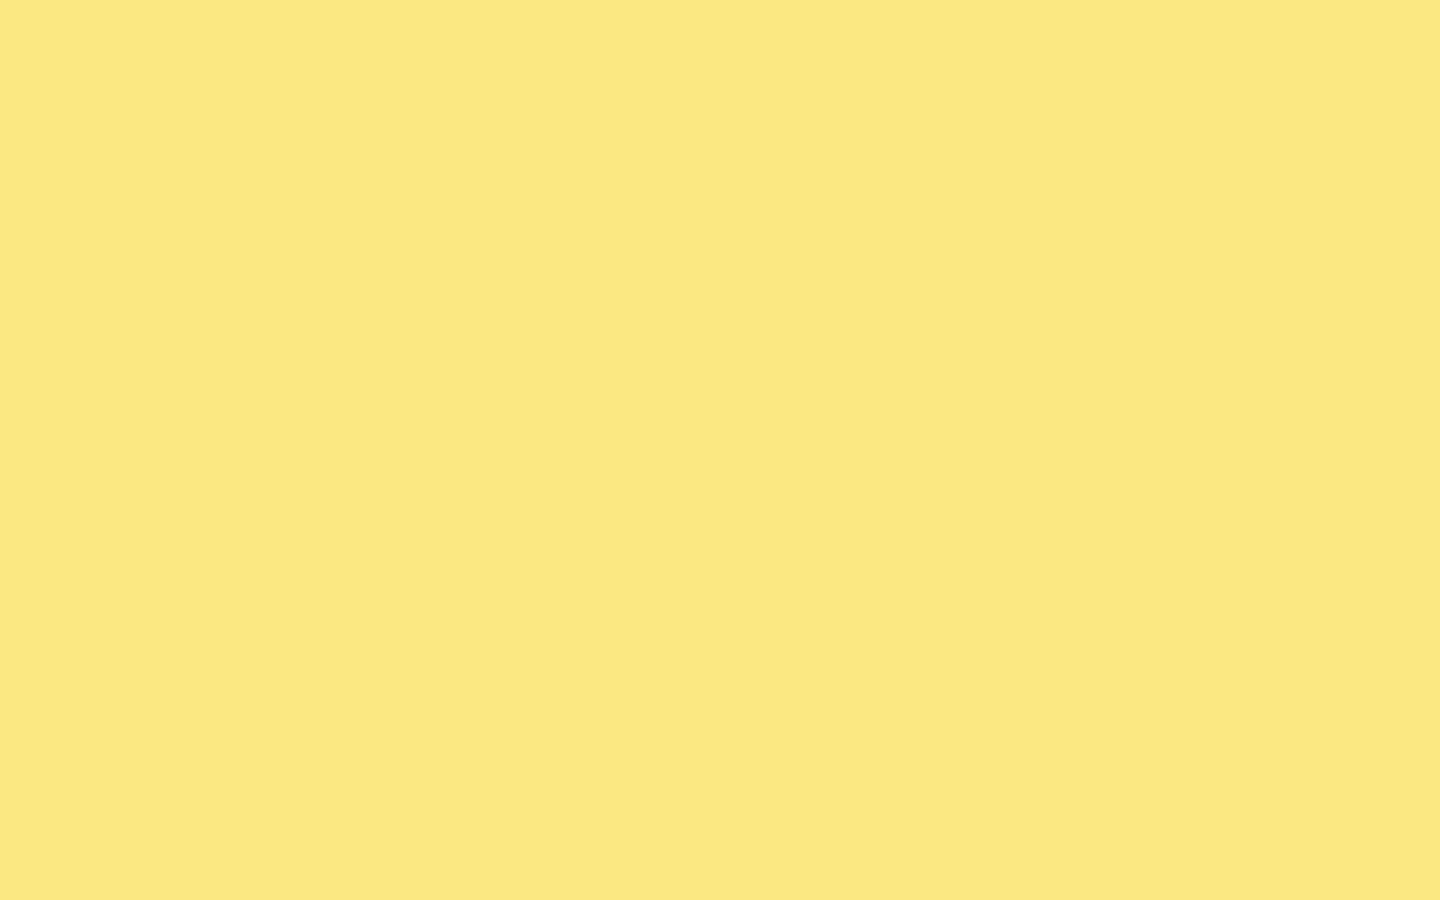 1440x900 Yellow Crayola Solid Color Background